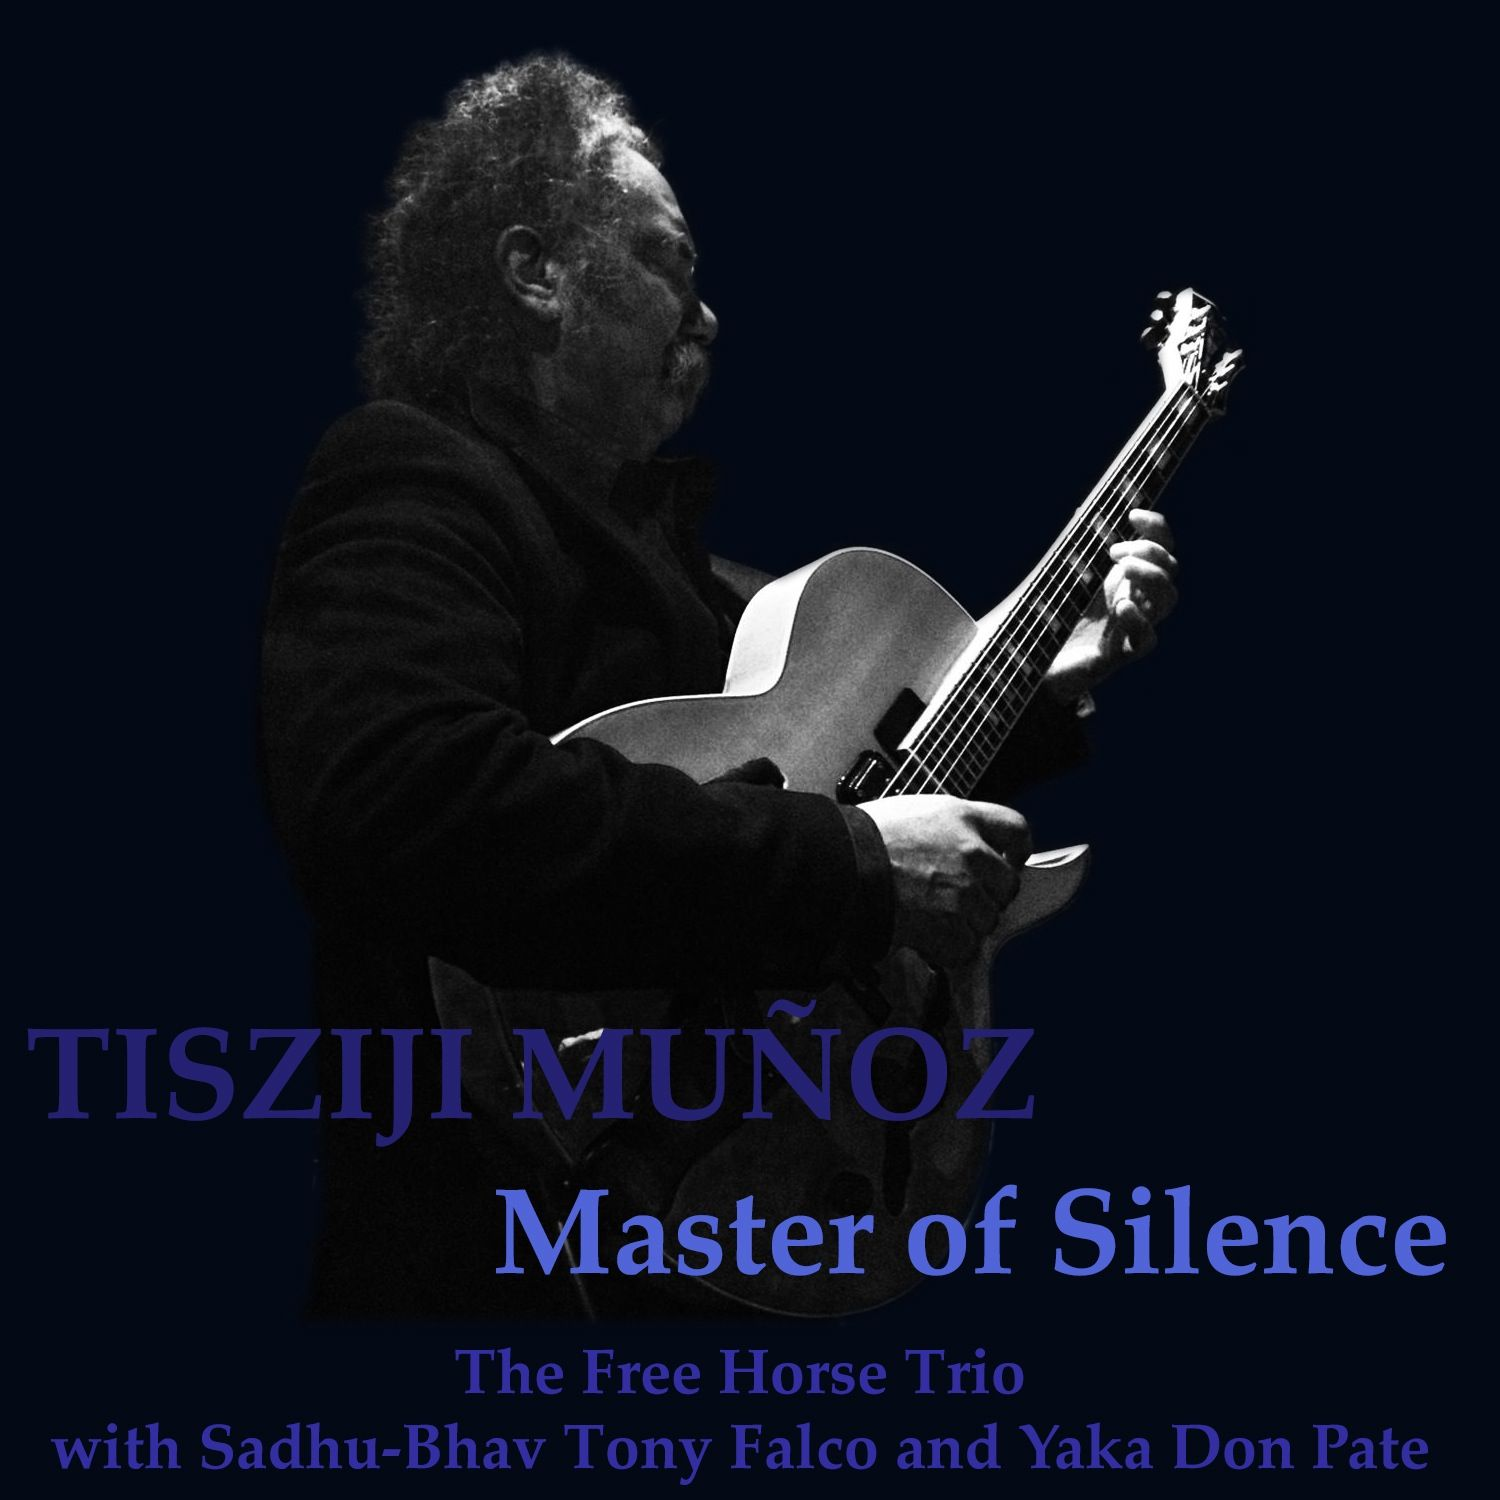 Tisziji! Oh Friend And Master